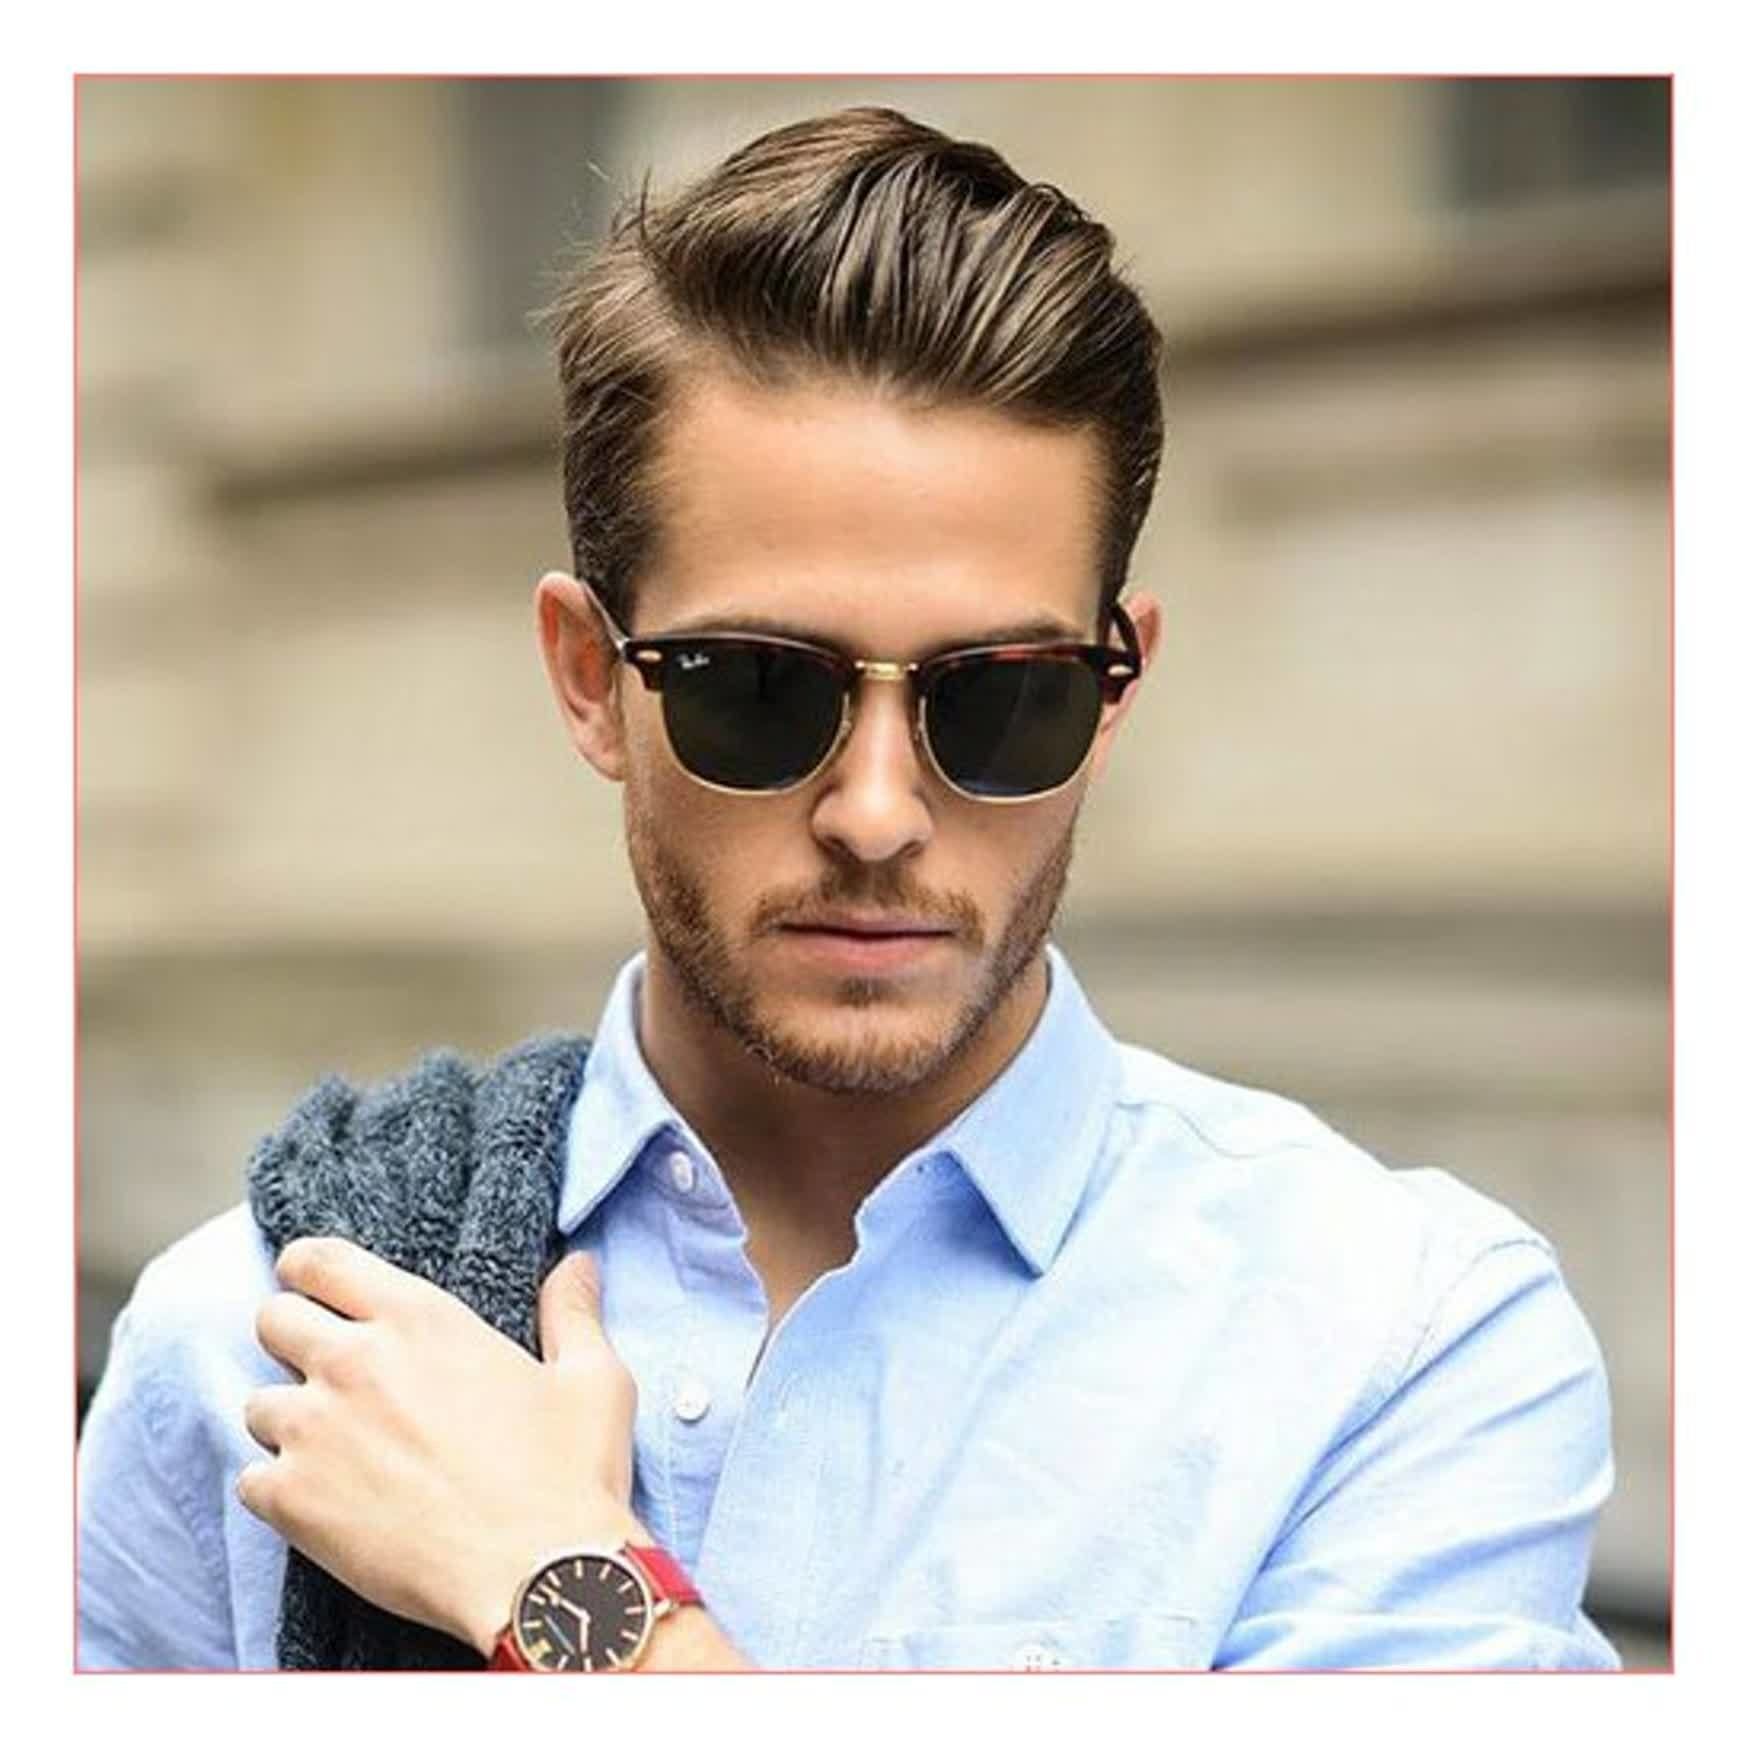 The Best Mad Men Haircuts Haircuts Models Ideas Pictures